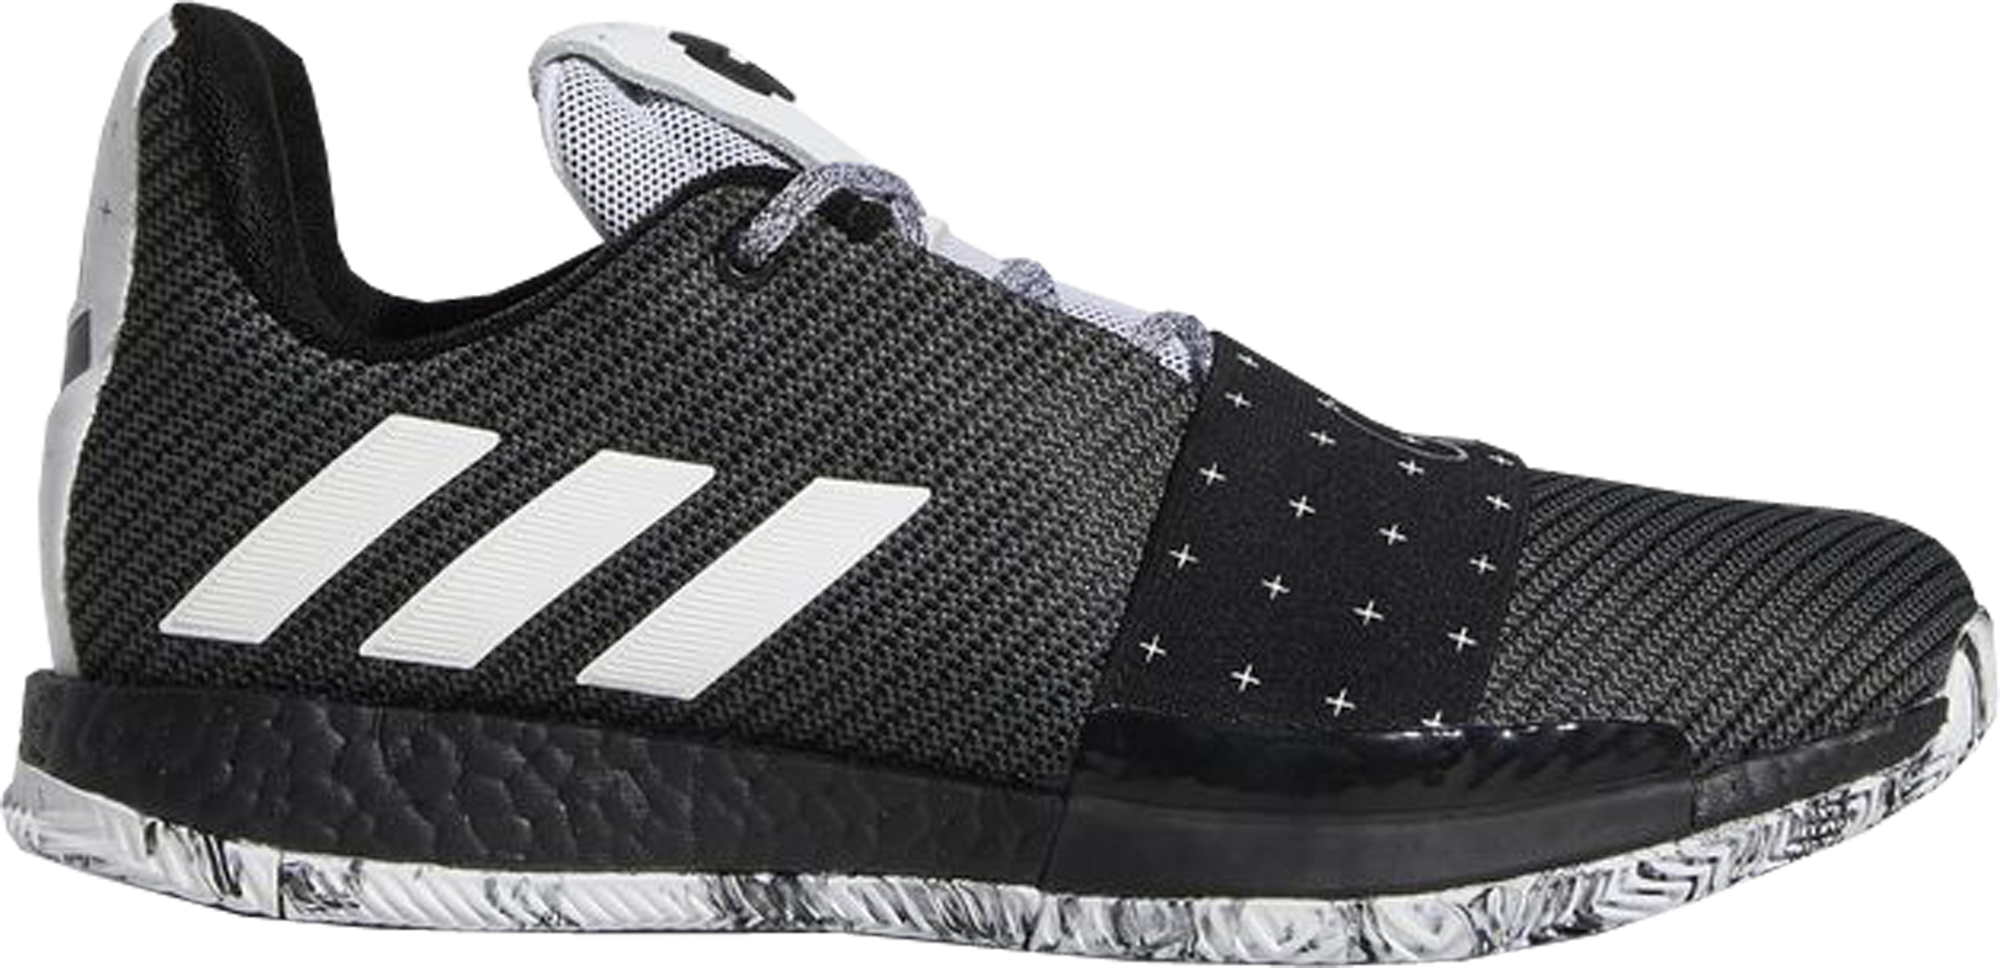 adidas Harden Vol. 3 Black White